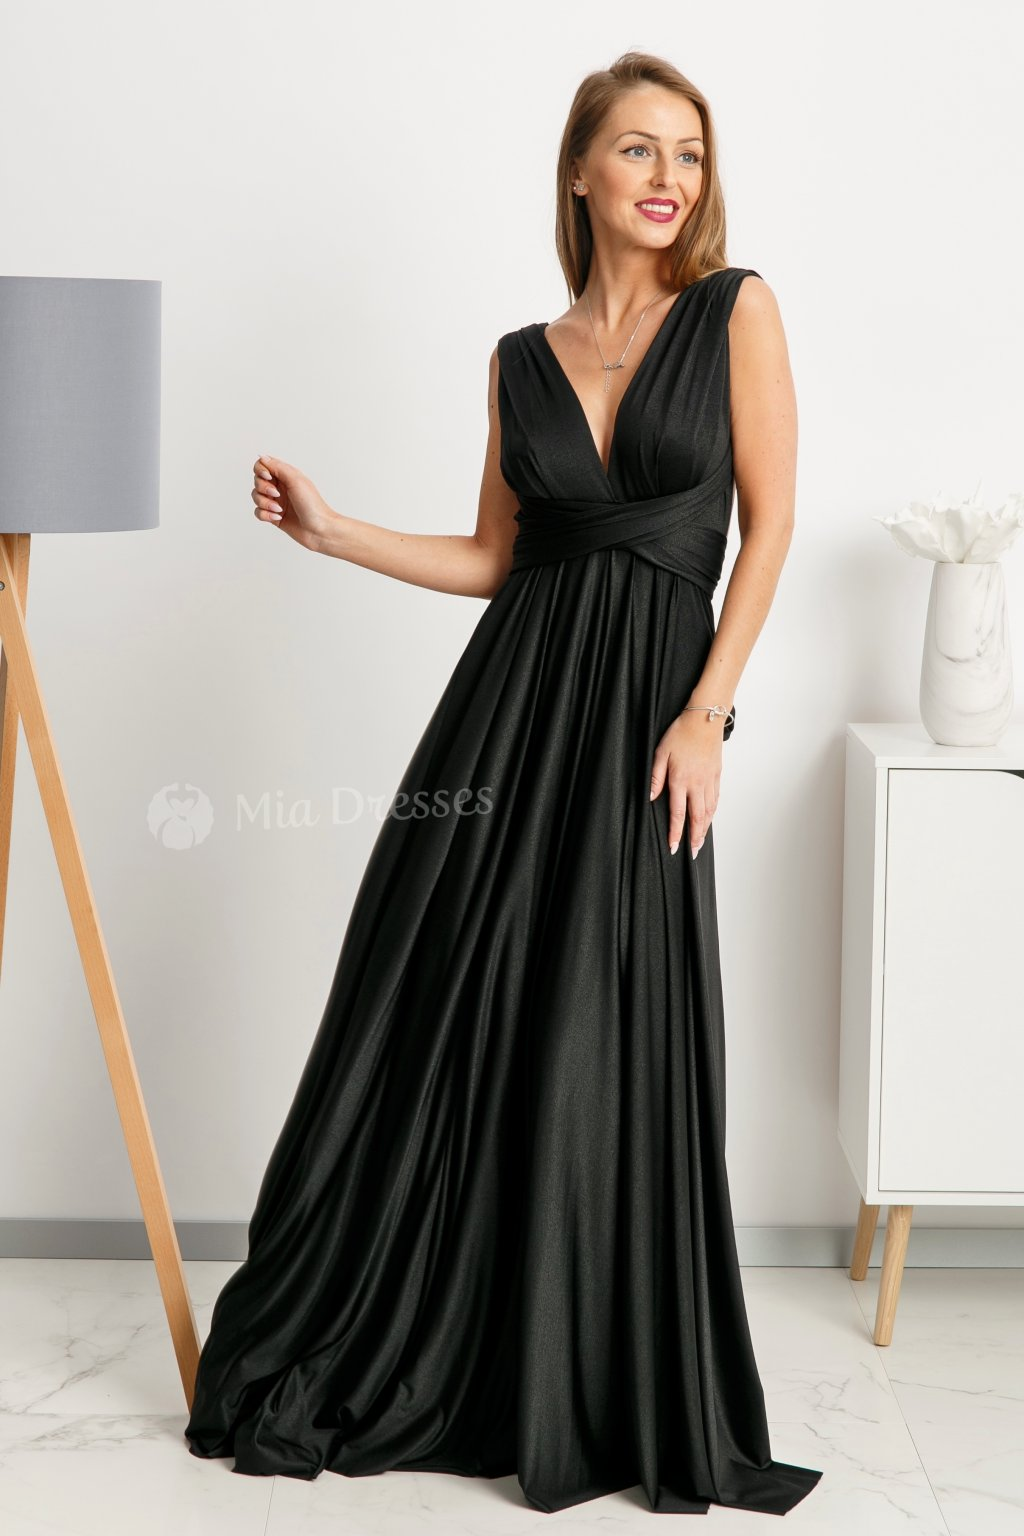 Black tie formal dress